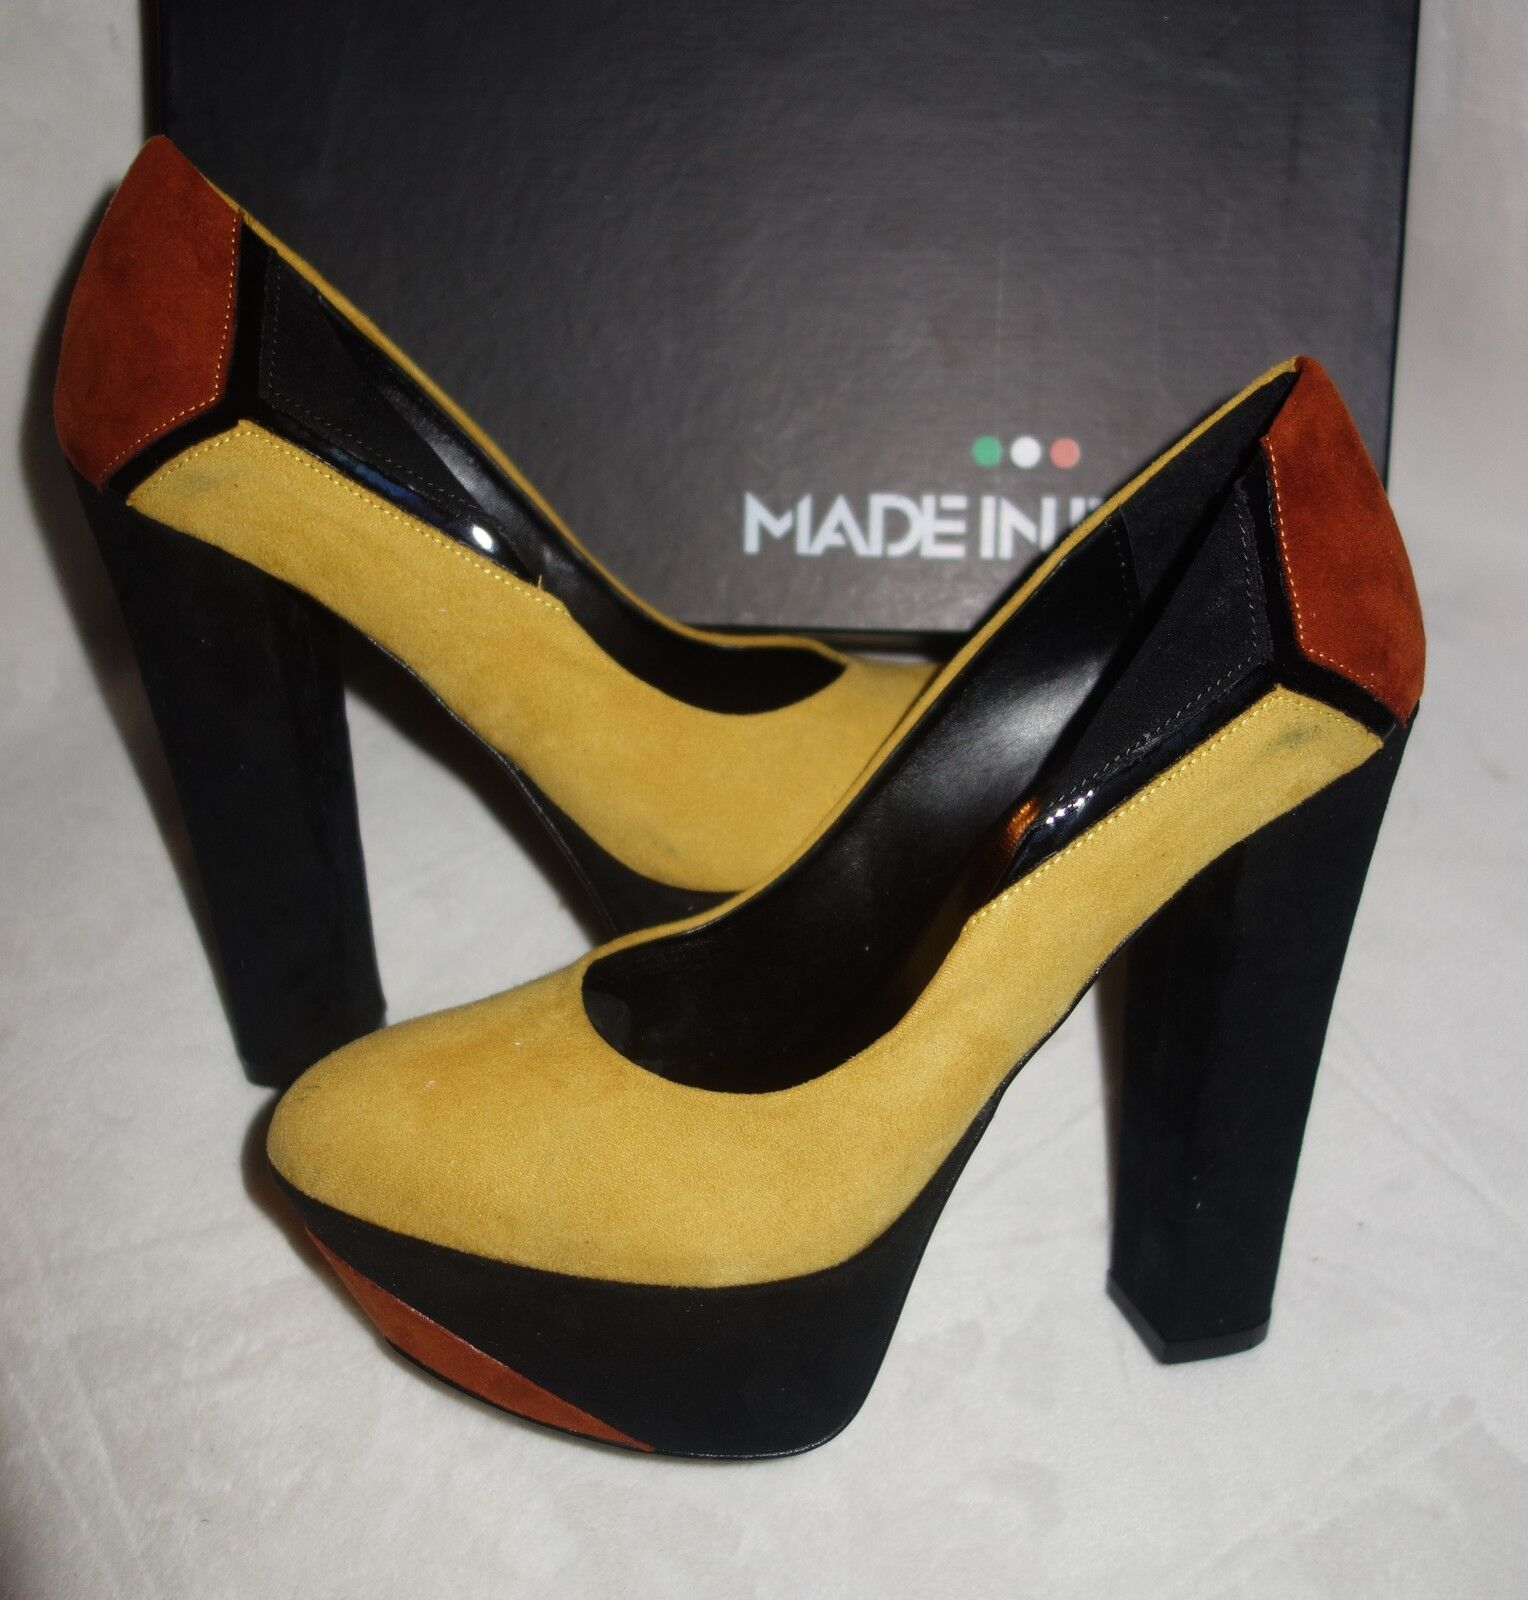 Made in Italia Platform Pumps multi color Suede yellow Size 35` new